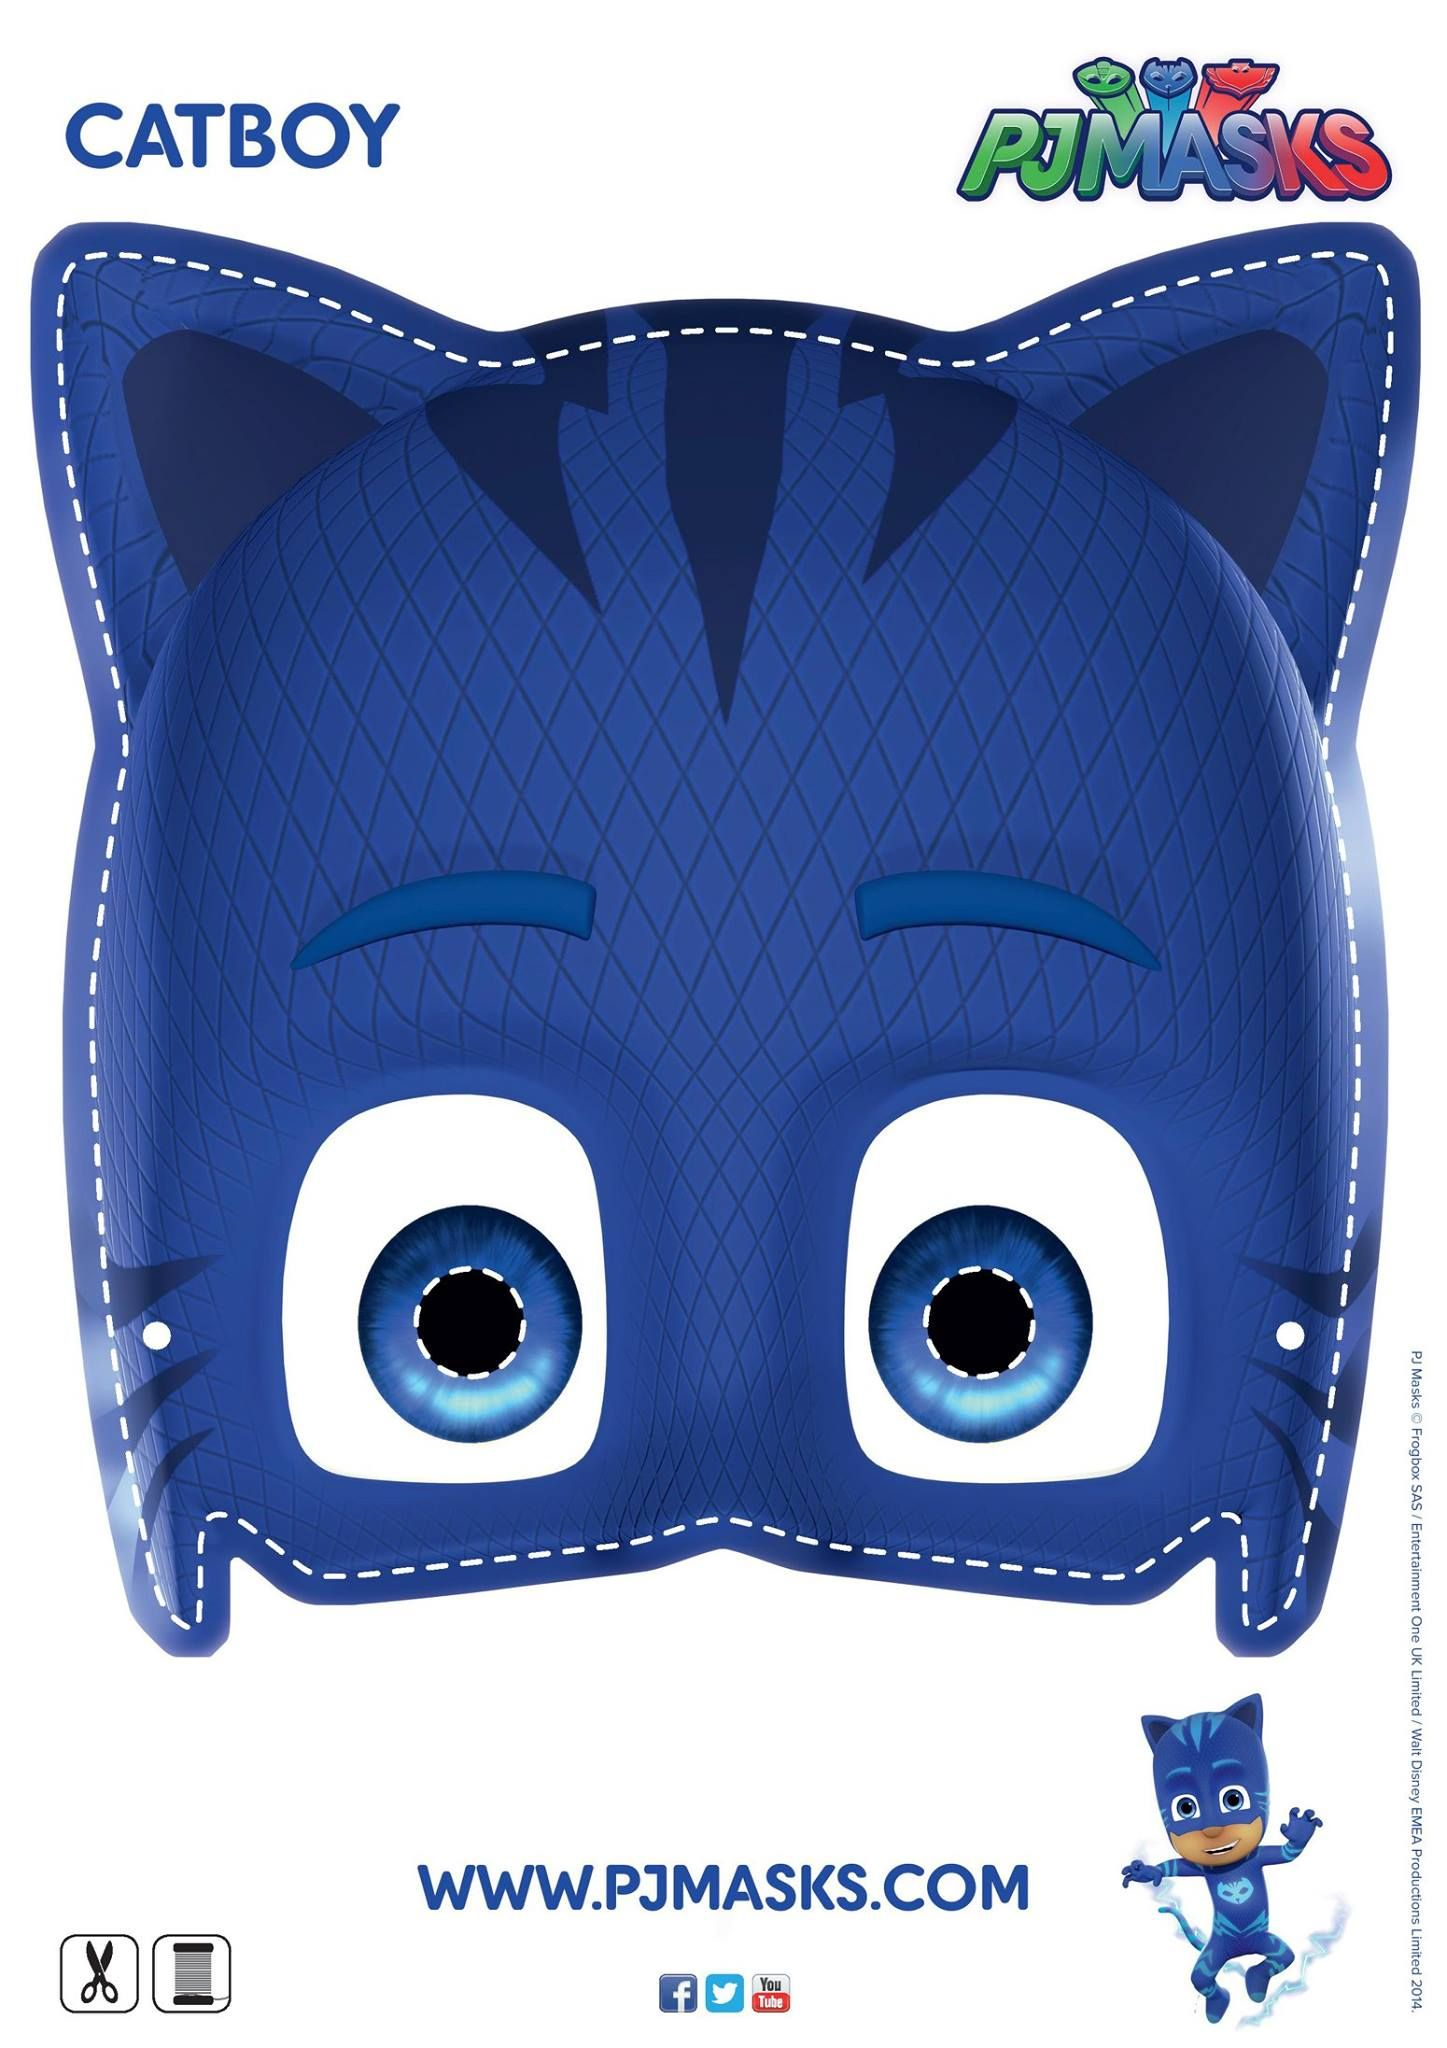 Make your own Catboy mask pjmasks activitysheet